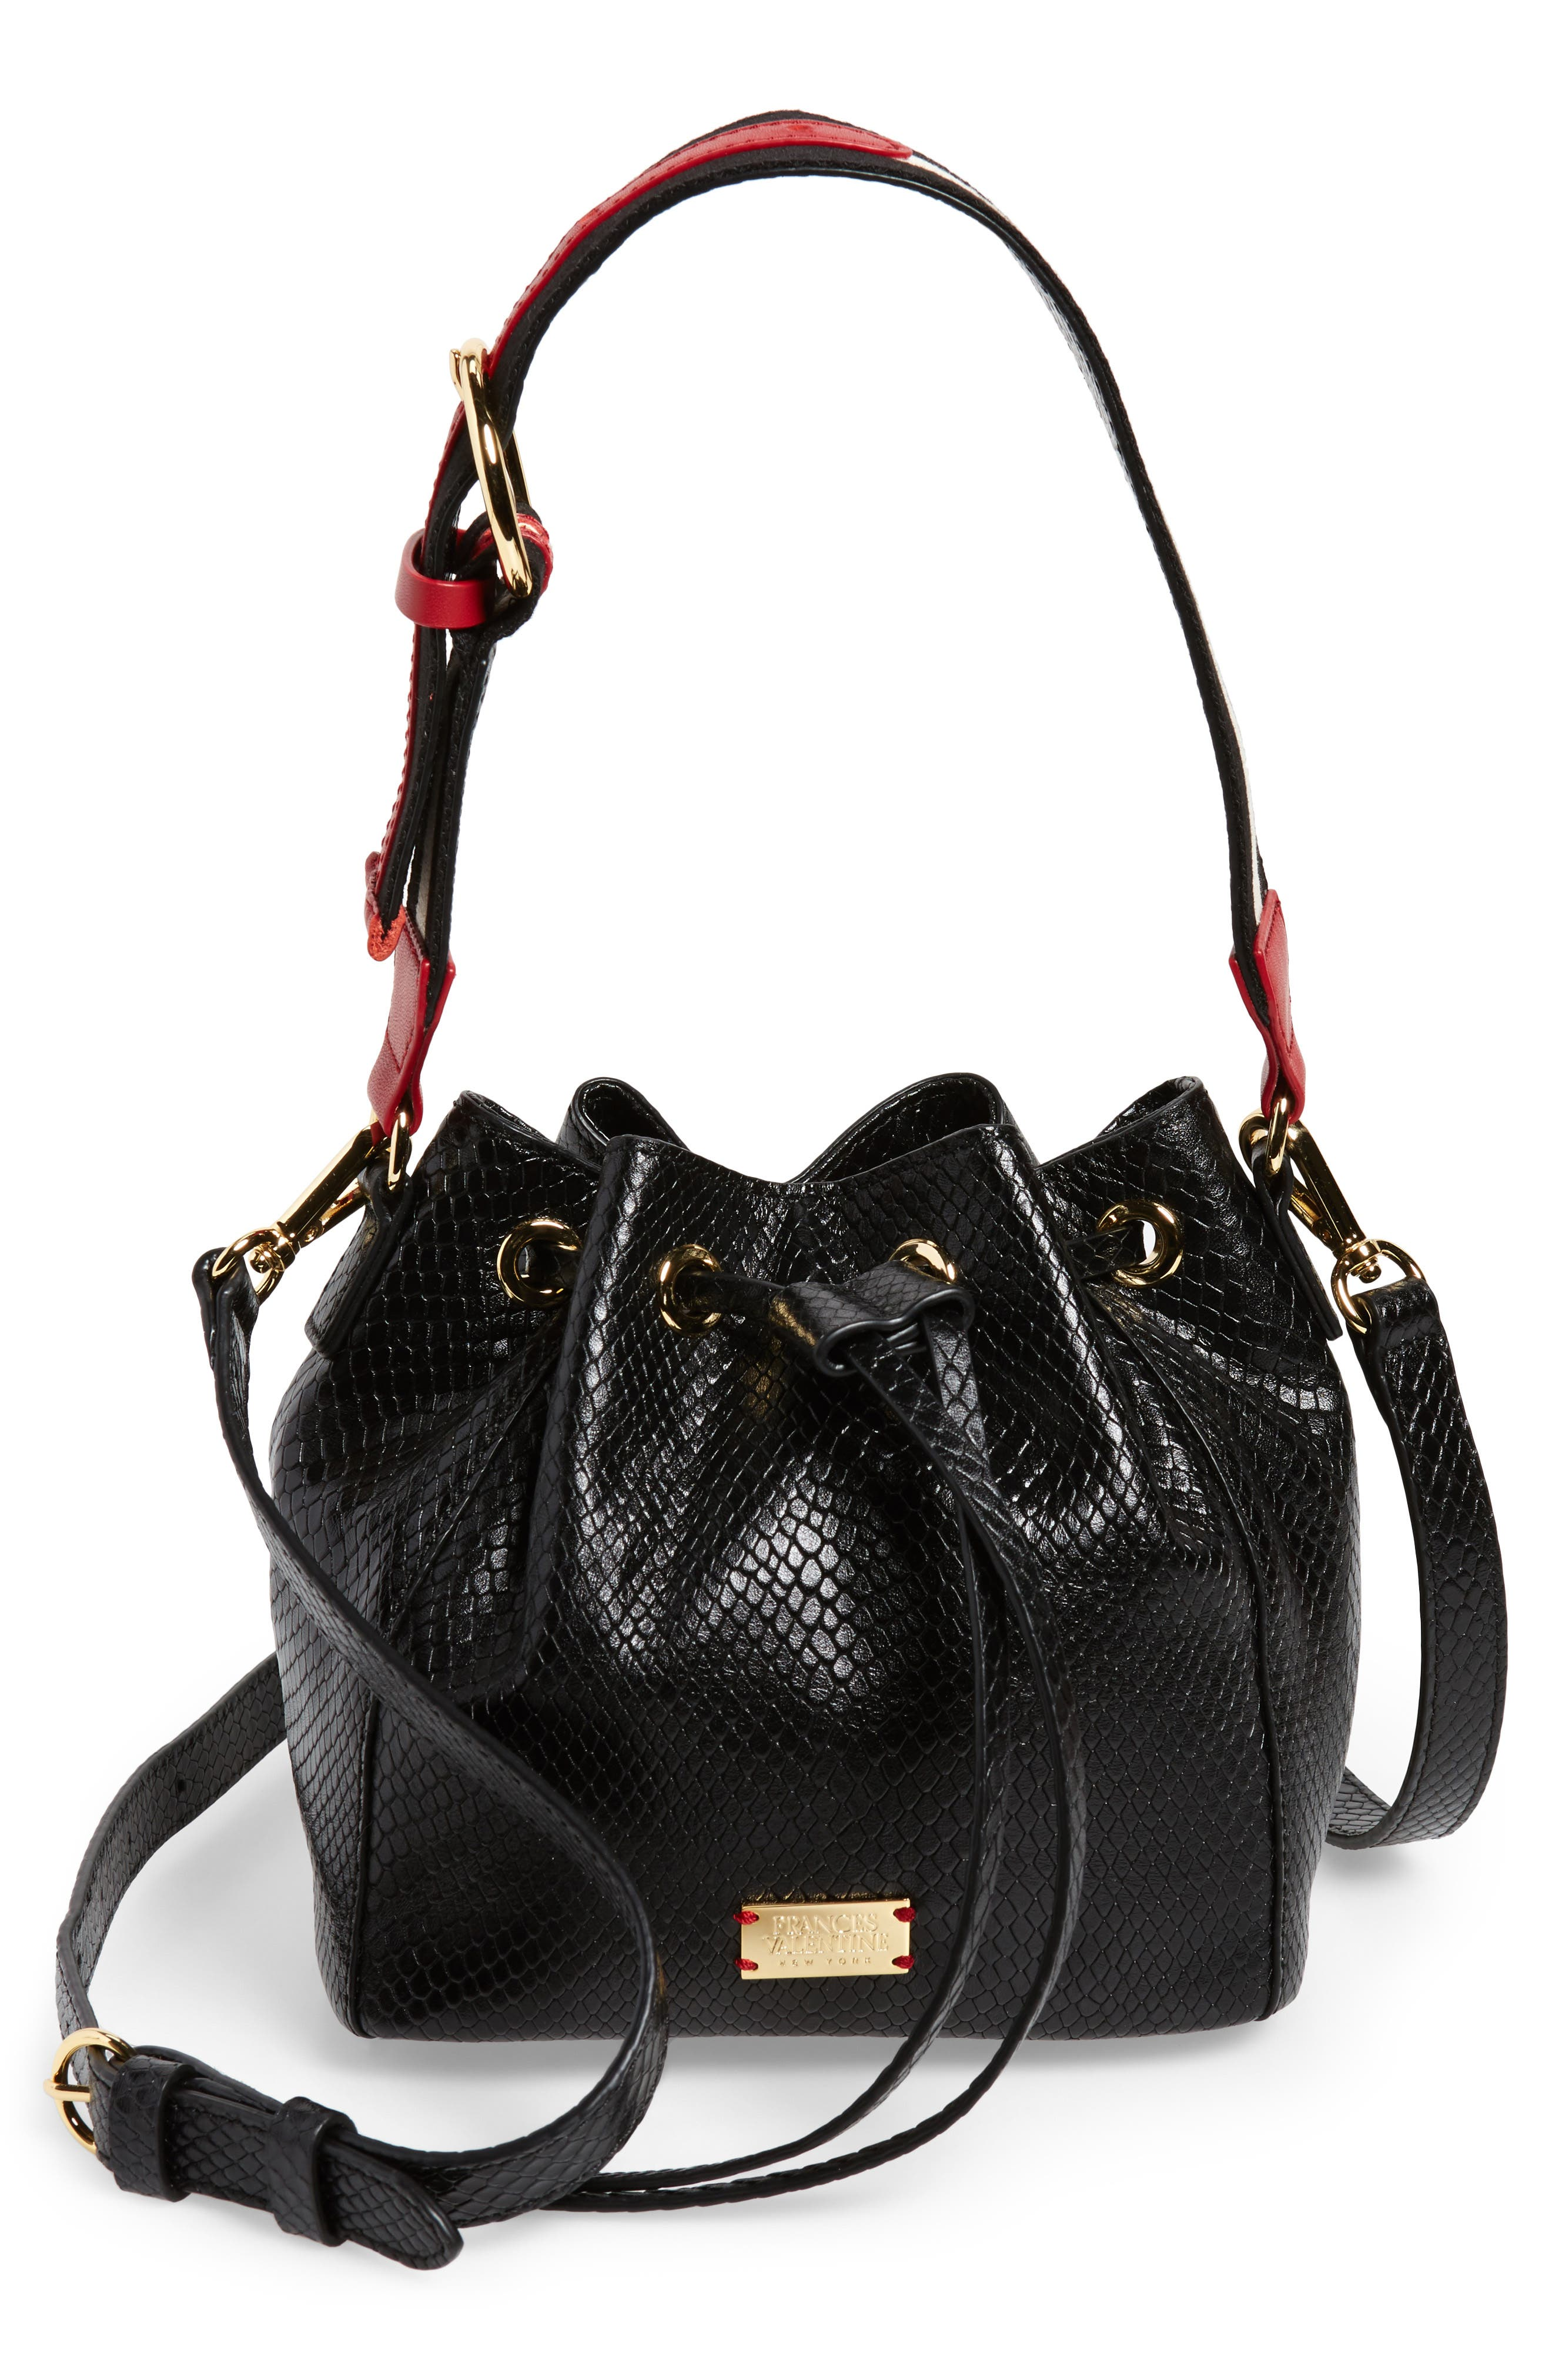 Small Snakeskin Embossed Leather Bucket Bag,                             Main thumbnail 1, color,                             Black